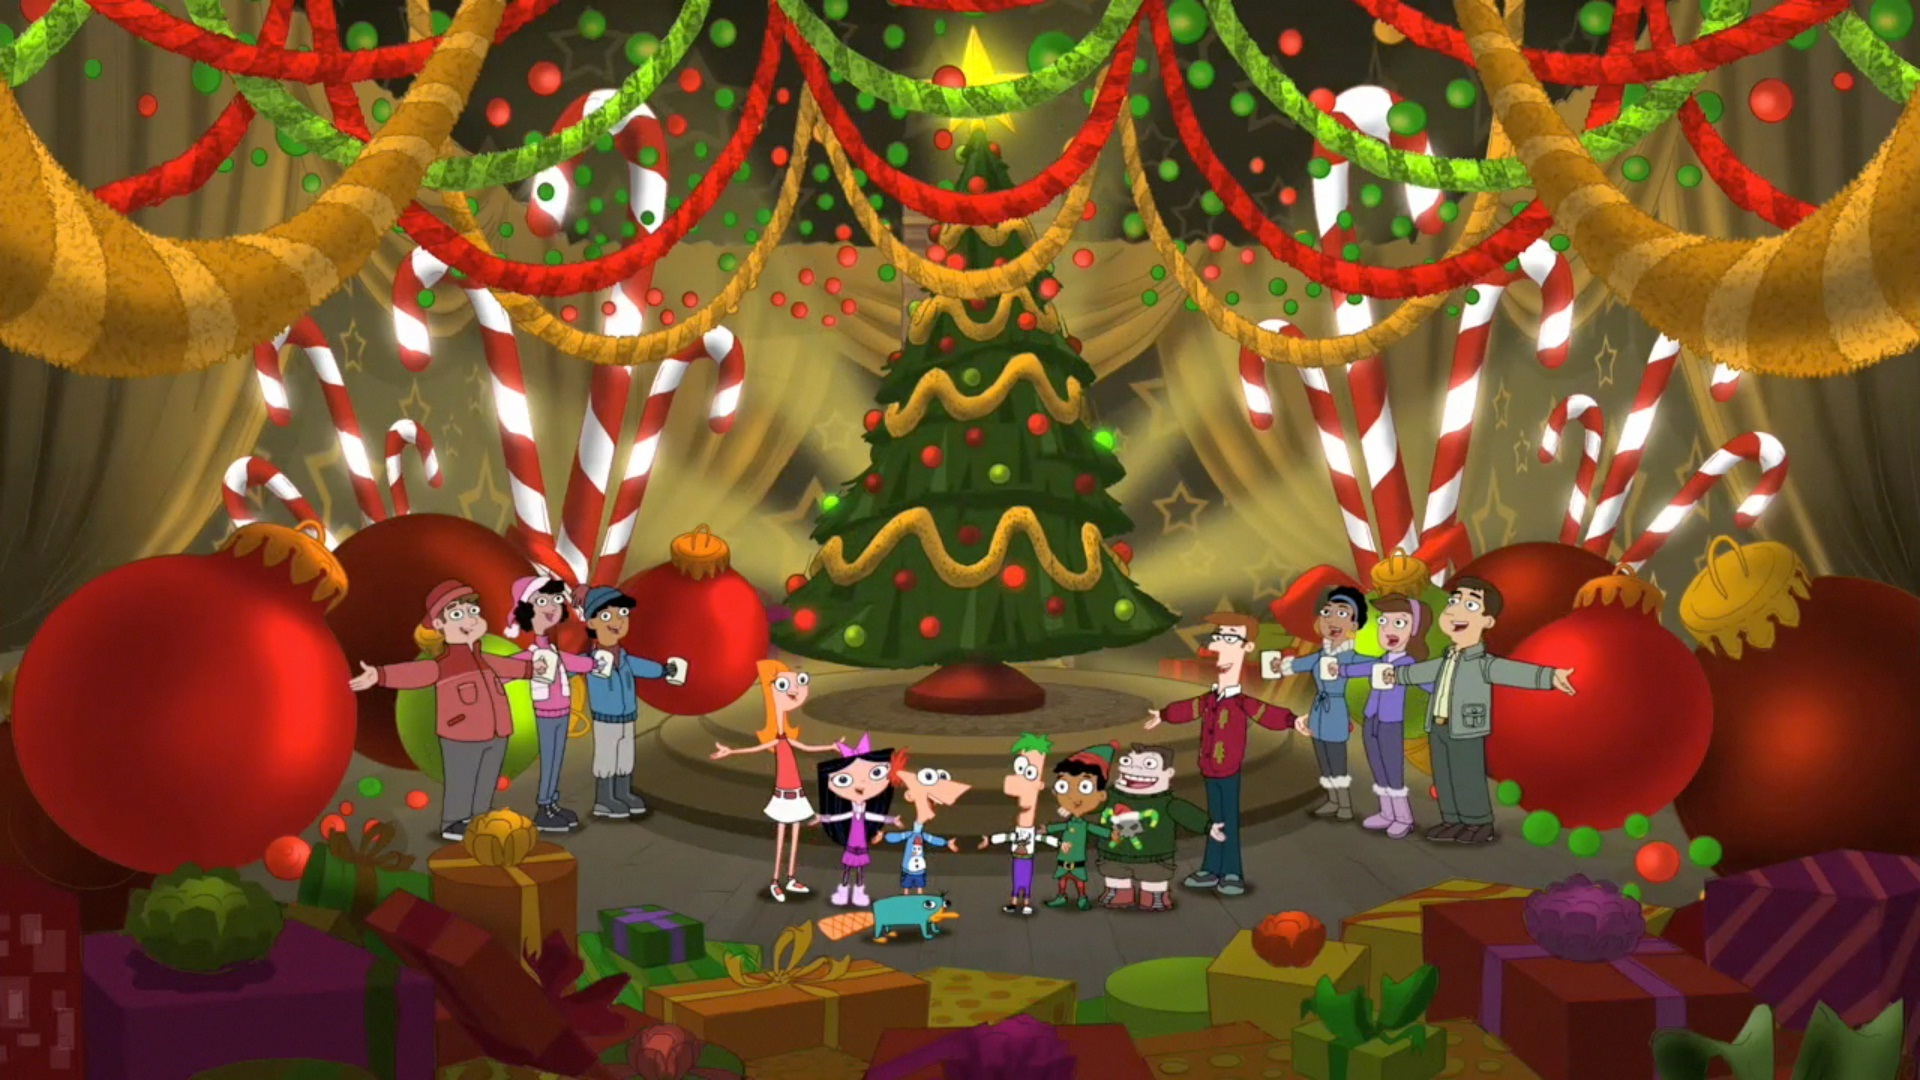 Image - We wish you a merry christmas 35.jpg | Phineas and Ferb Wiki ...